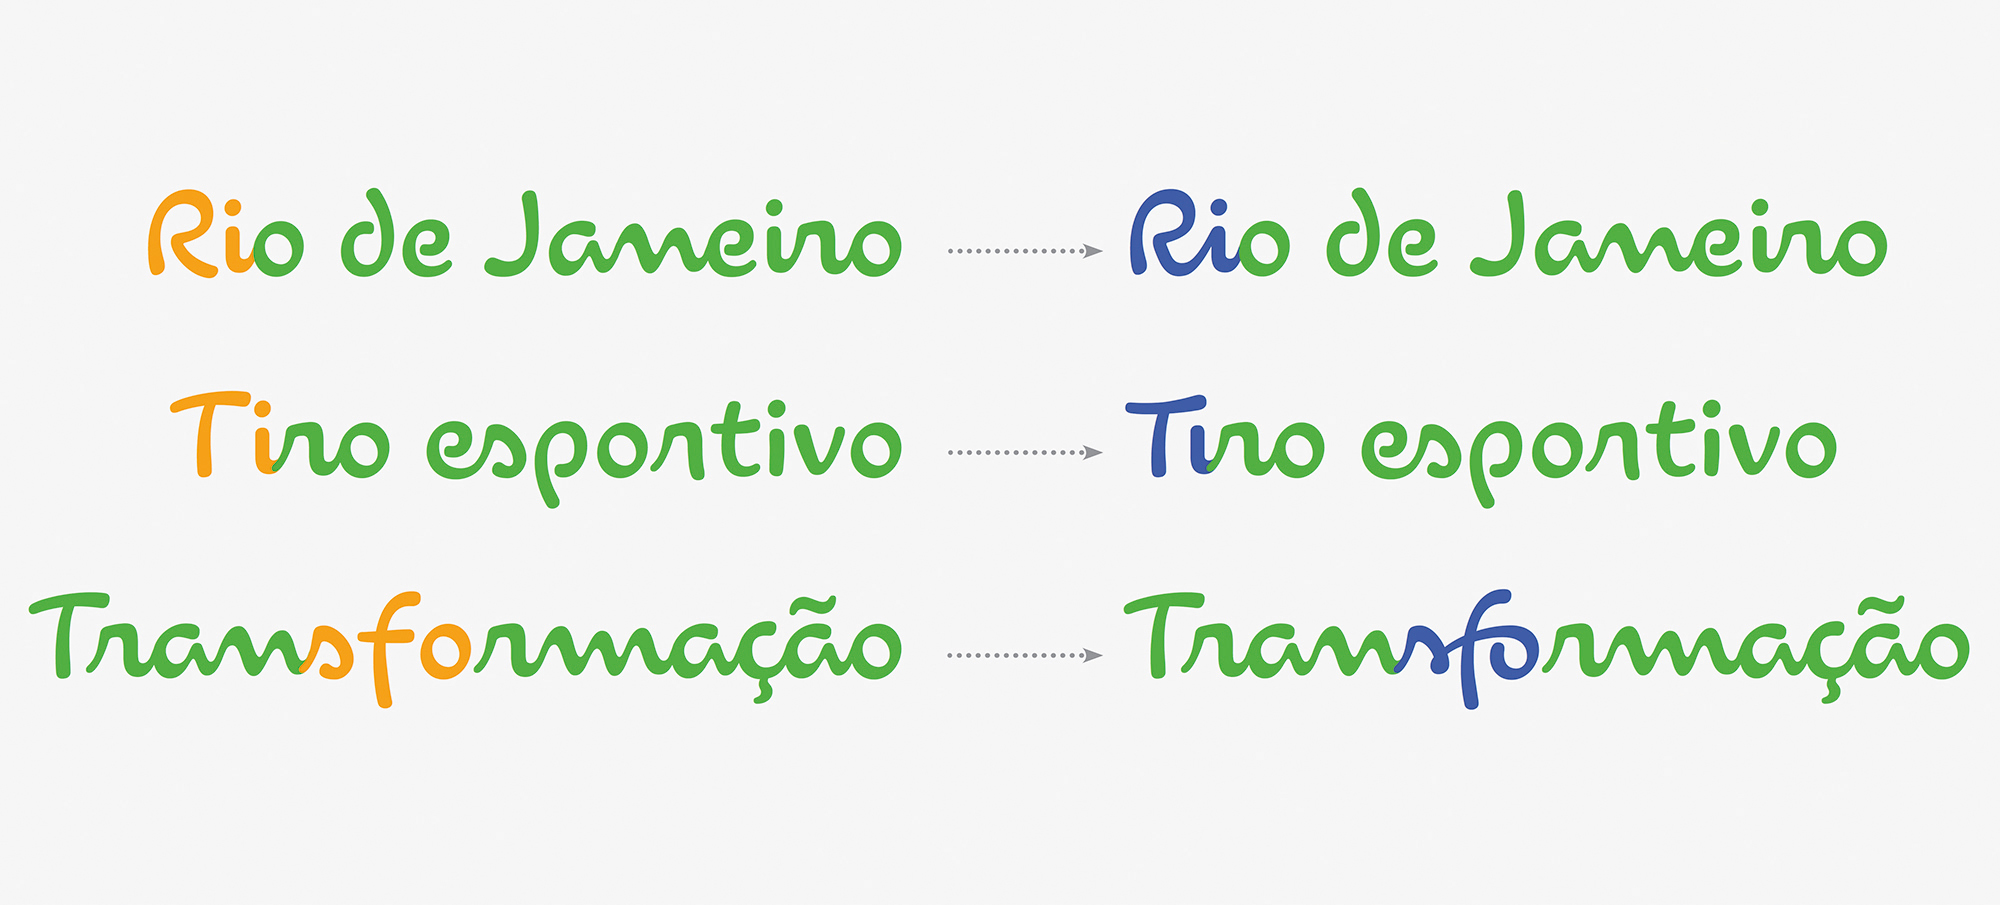 Brand typography: Dalton Maag's brand font for the Rio Olympics